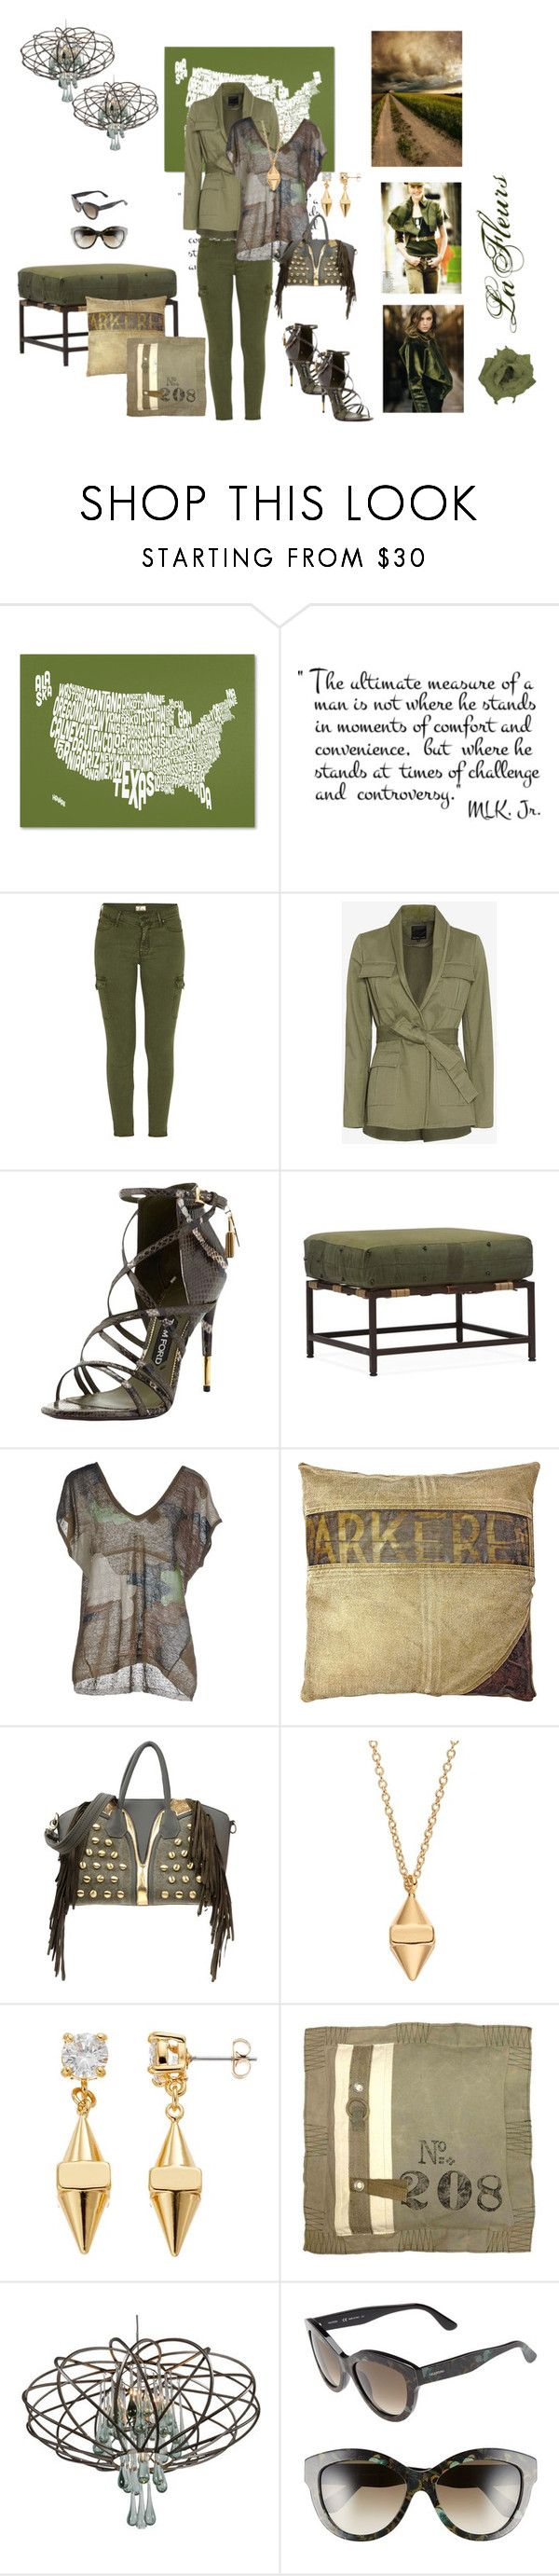 """""""Ultimate Measure"""" by lafleurs ❤ liked on Polyvore featuring Trademark Fine Art, Mother, Marissa Webb, Tom Ford, Stephen Kenn, Gotha, Dot & Bo, Stella Valle, Varaluz and Valentino"""